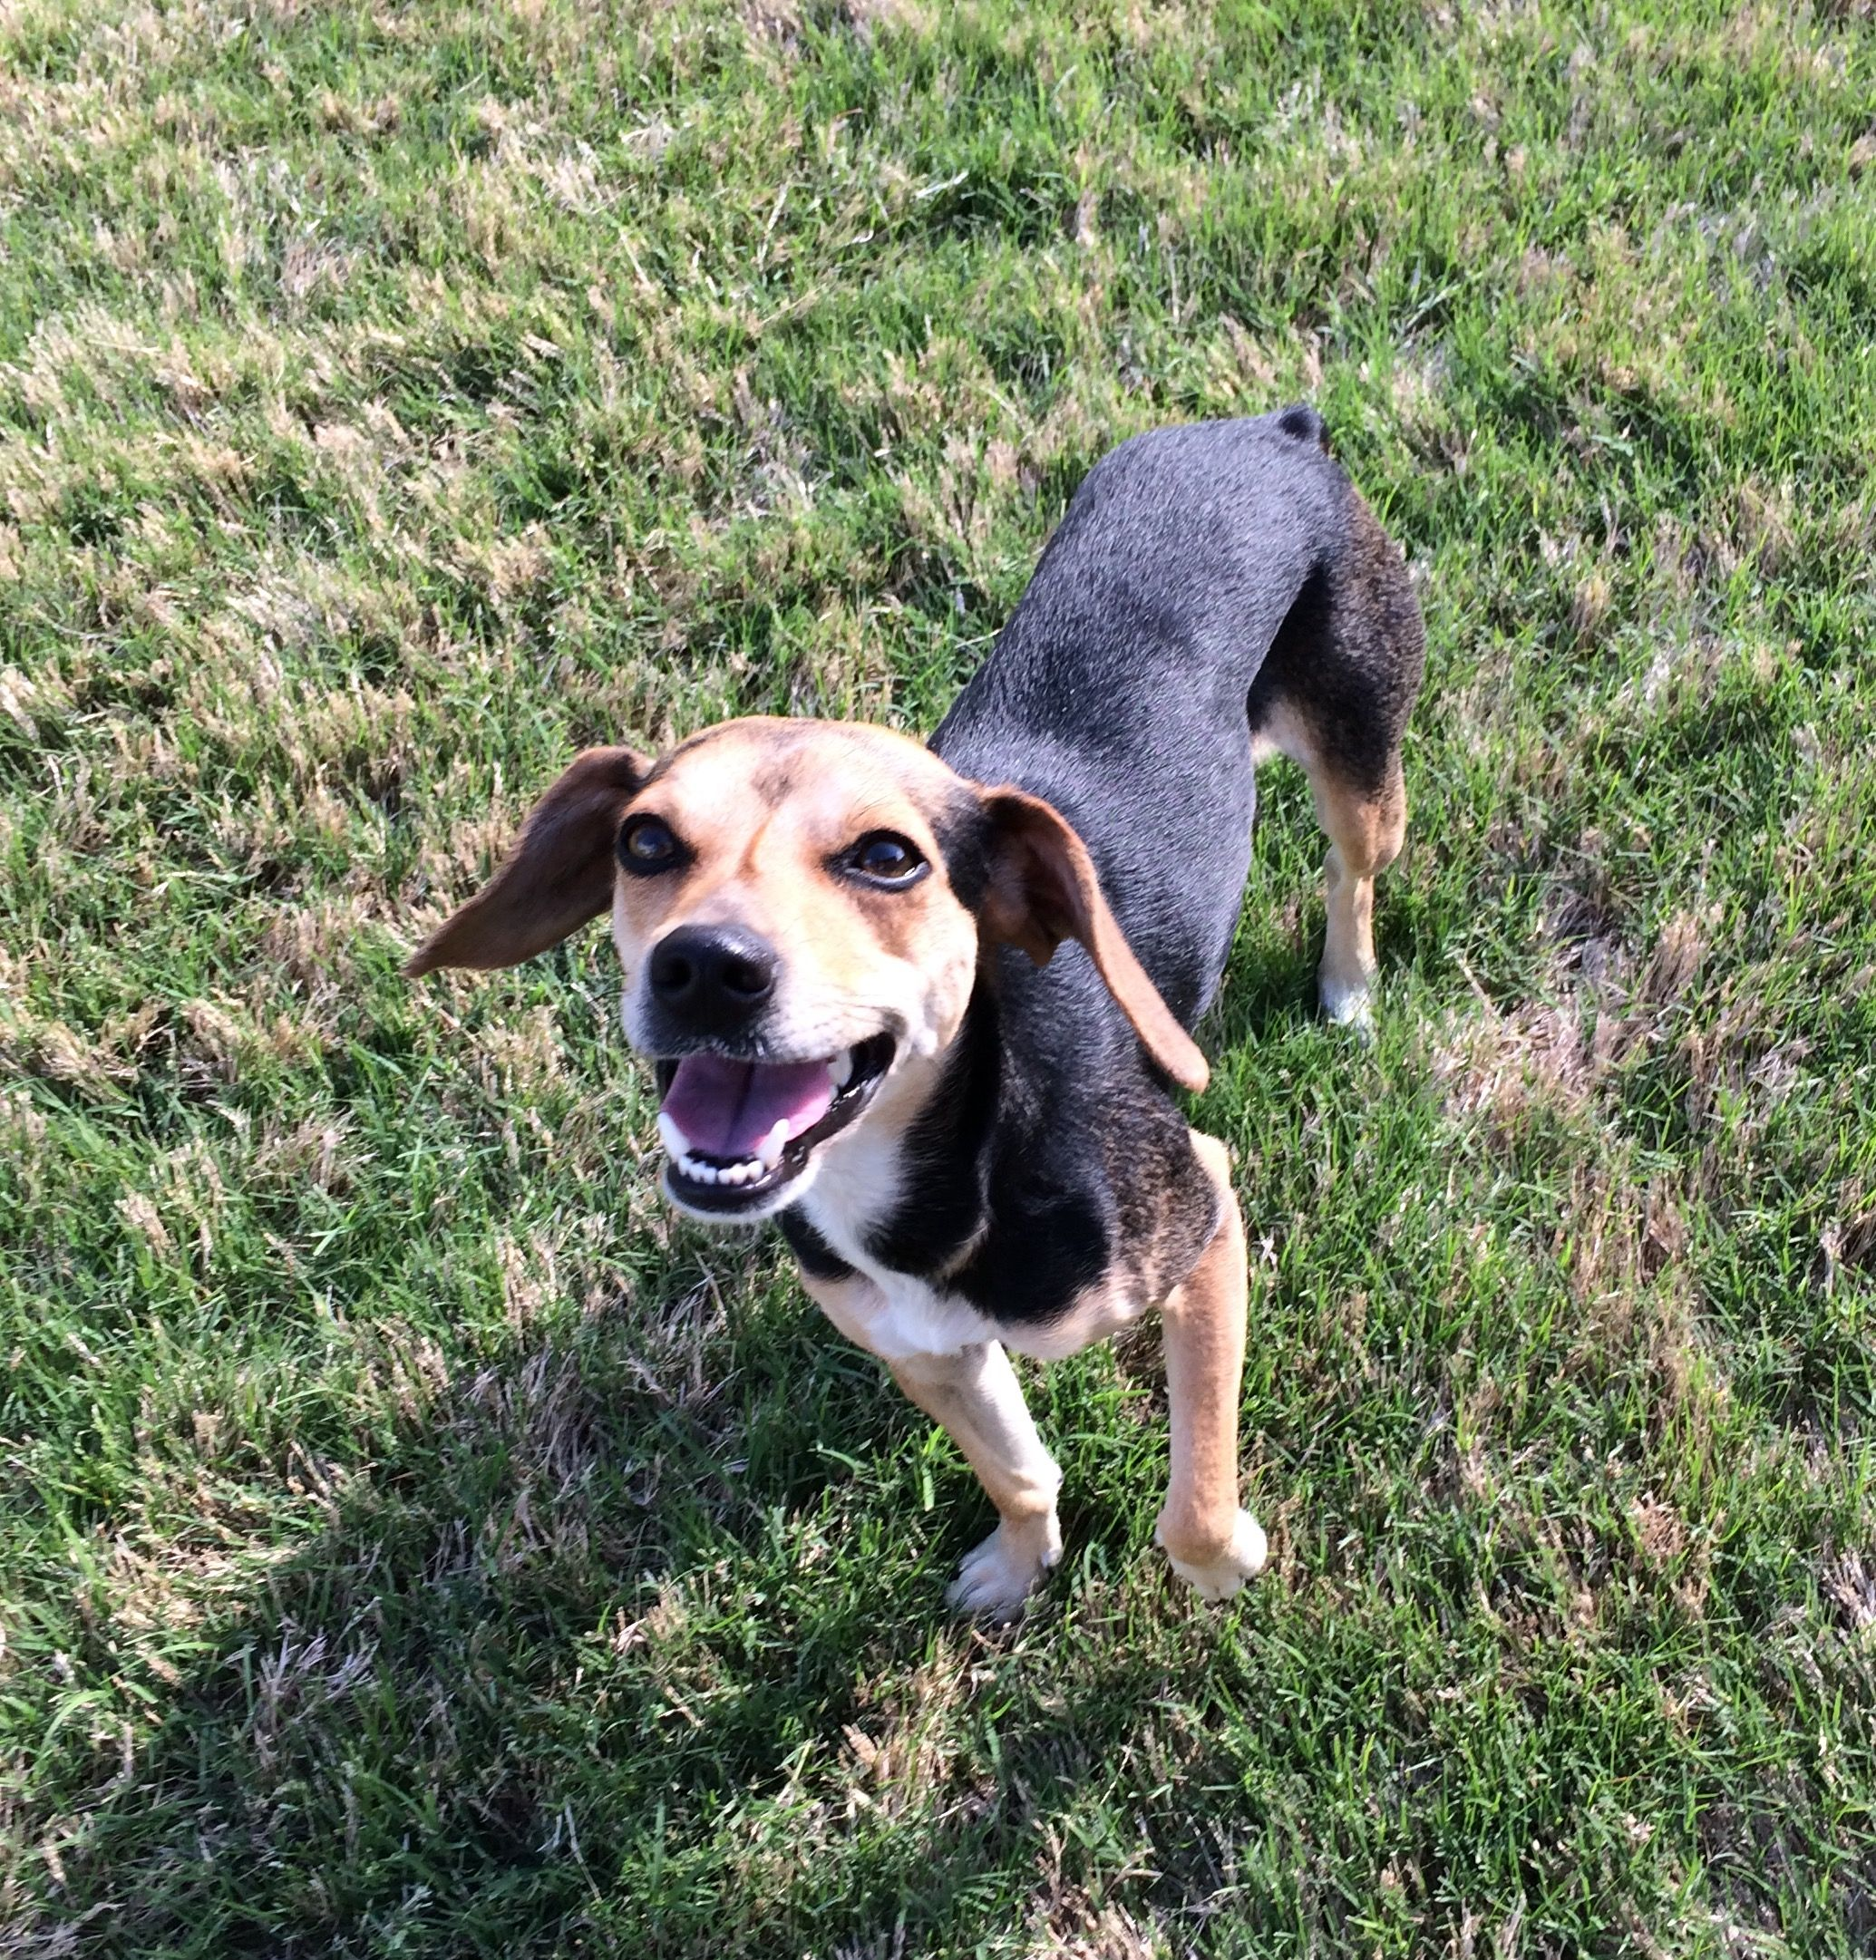 Beagle dog for Adoption in McKinney, TX. ADN515073 on